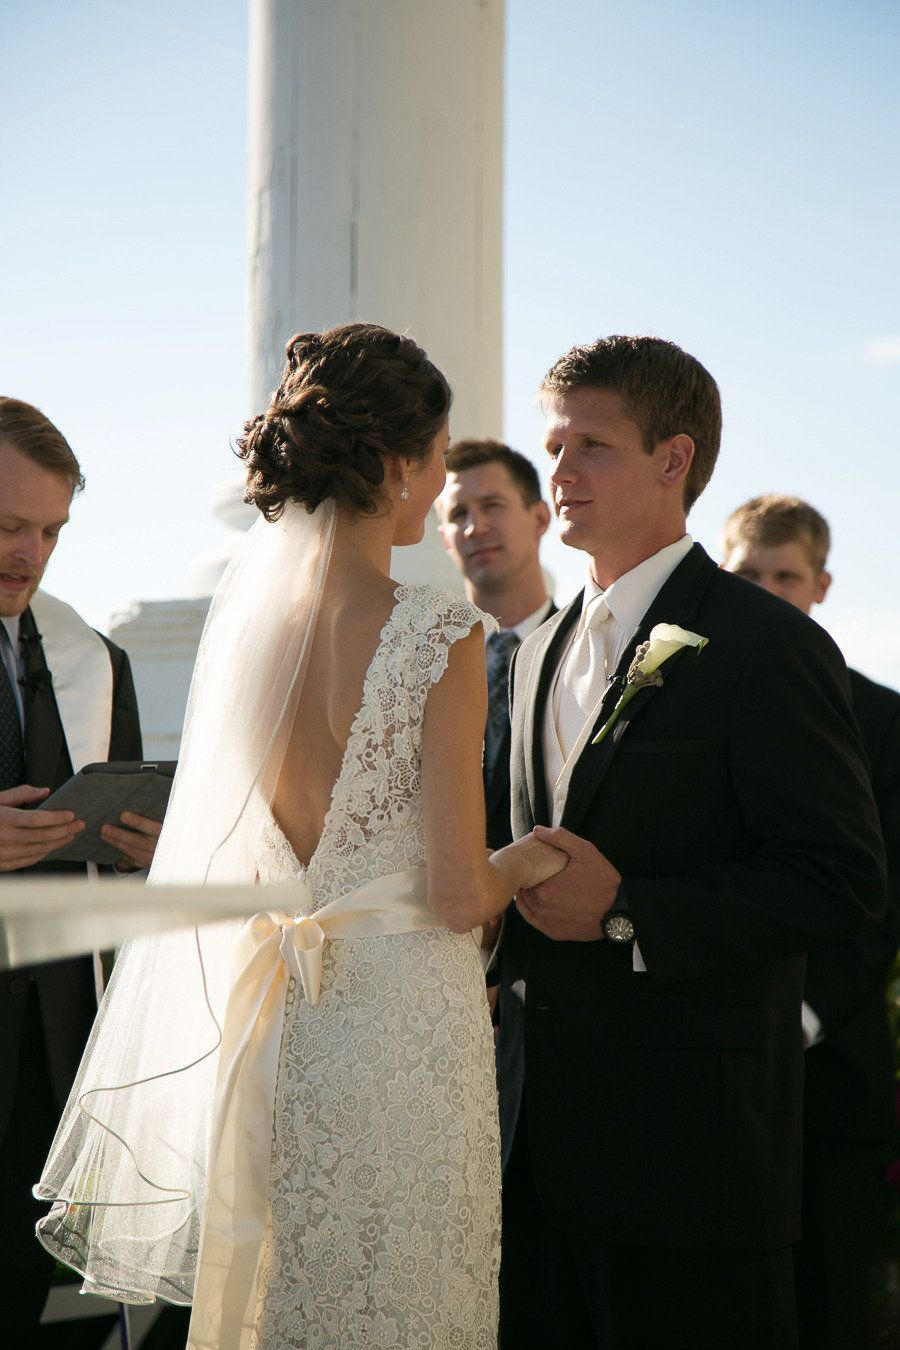 Grand hotel wedding from mccoy made more hotel wedding and